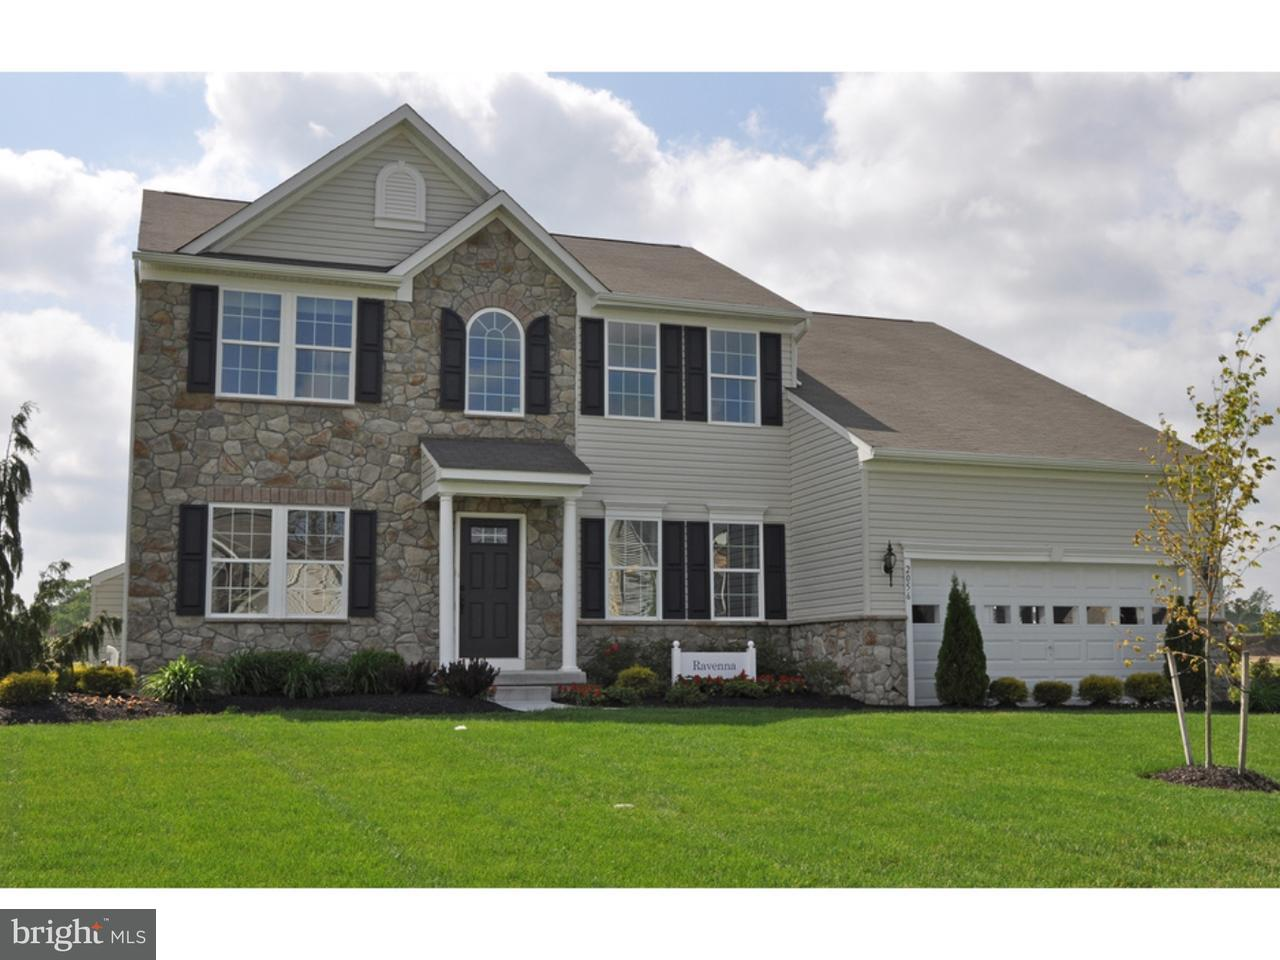 Single Family Home for Sale at 300 PEAR TREE Court Delran, New Jersey 08075 United States